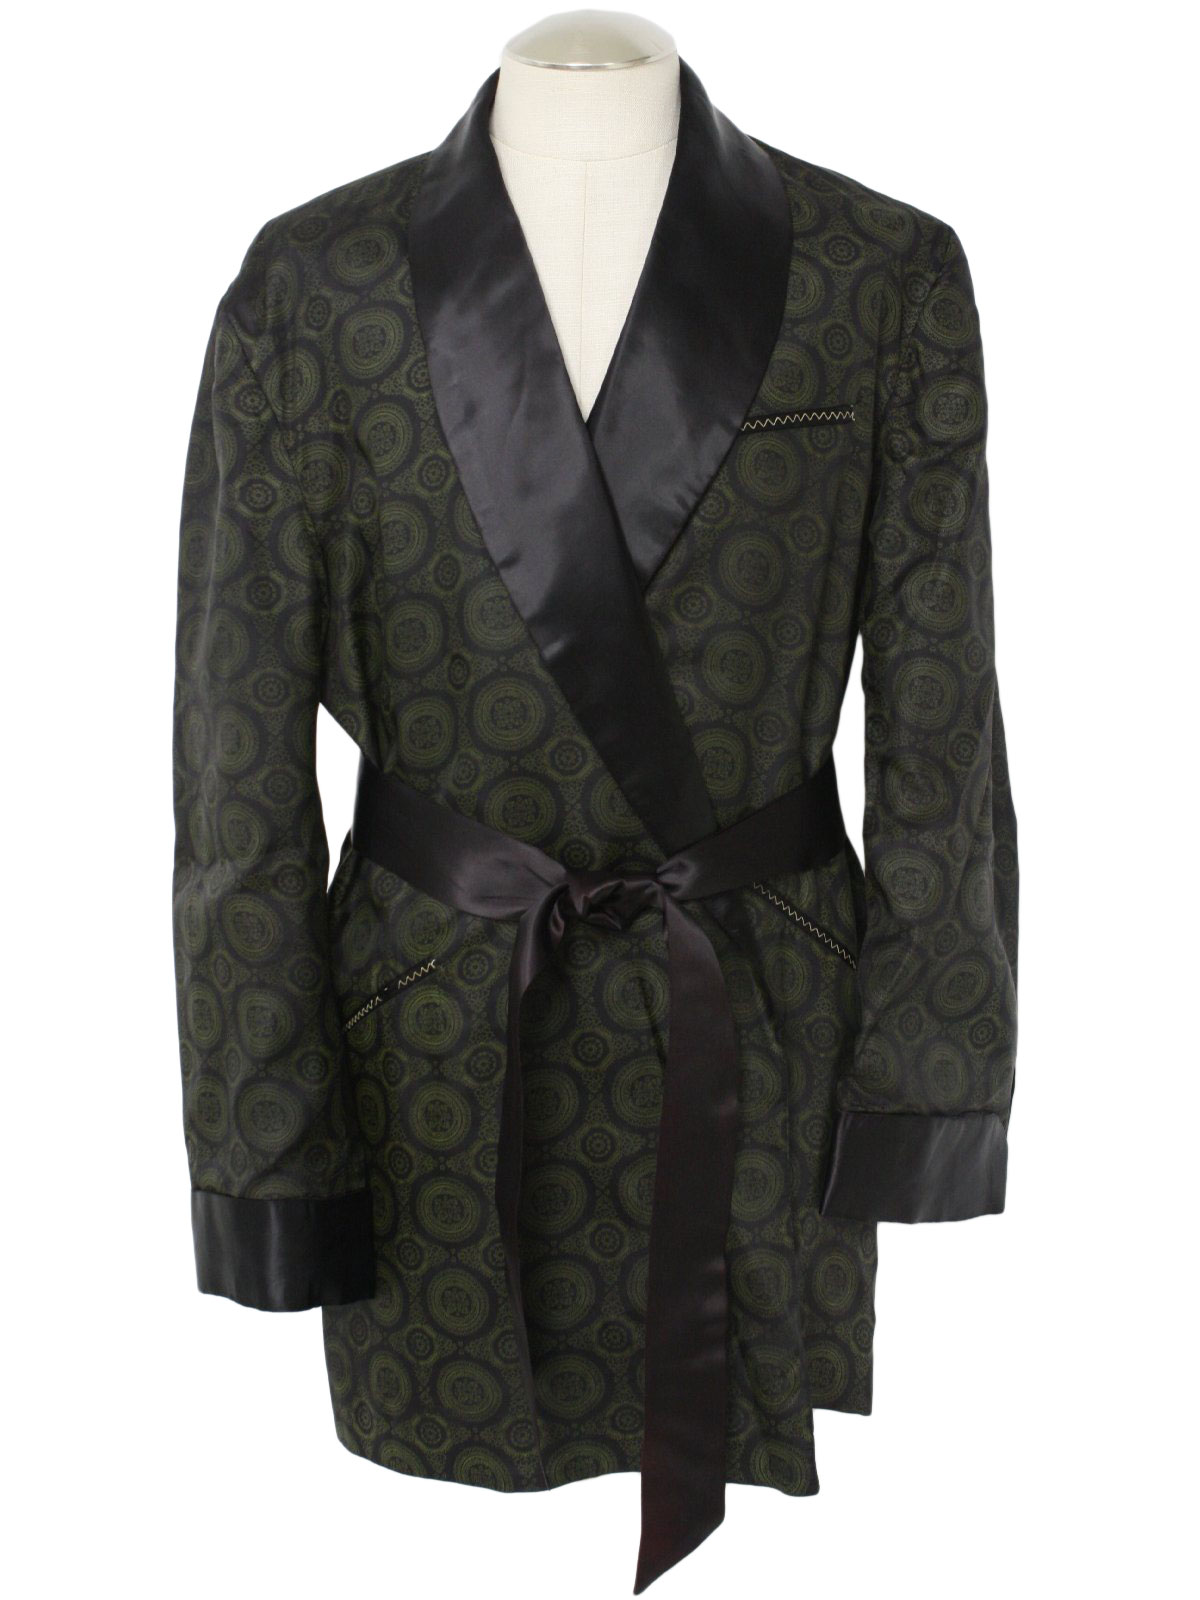 Be the life of the party in the Men's Bachelor Smoking Jacket. Whatever Halloween event you attend you are sure to turn some heads in this fashionable costume. This is a must have item for this fall.